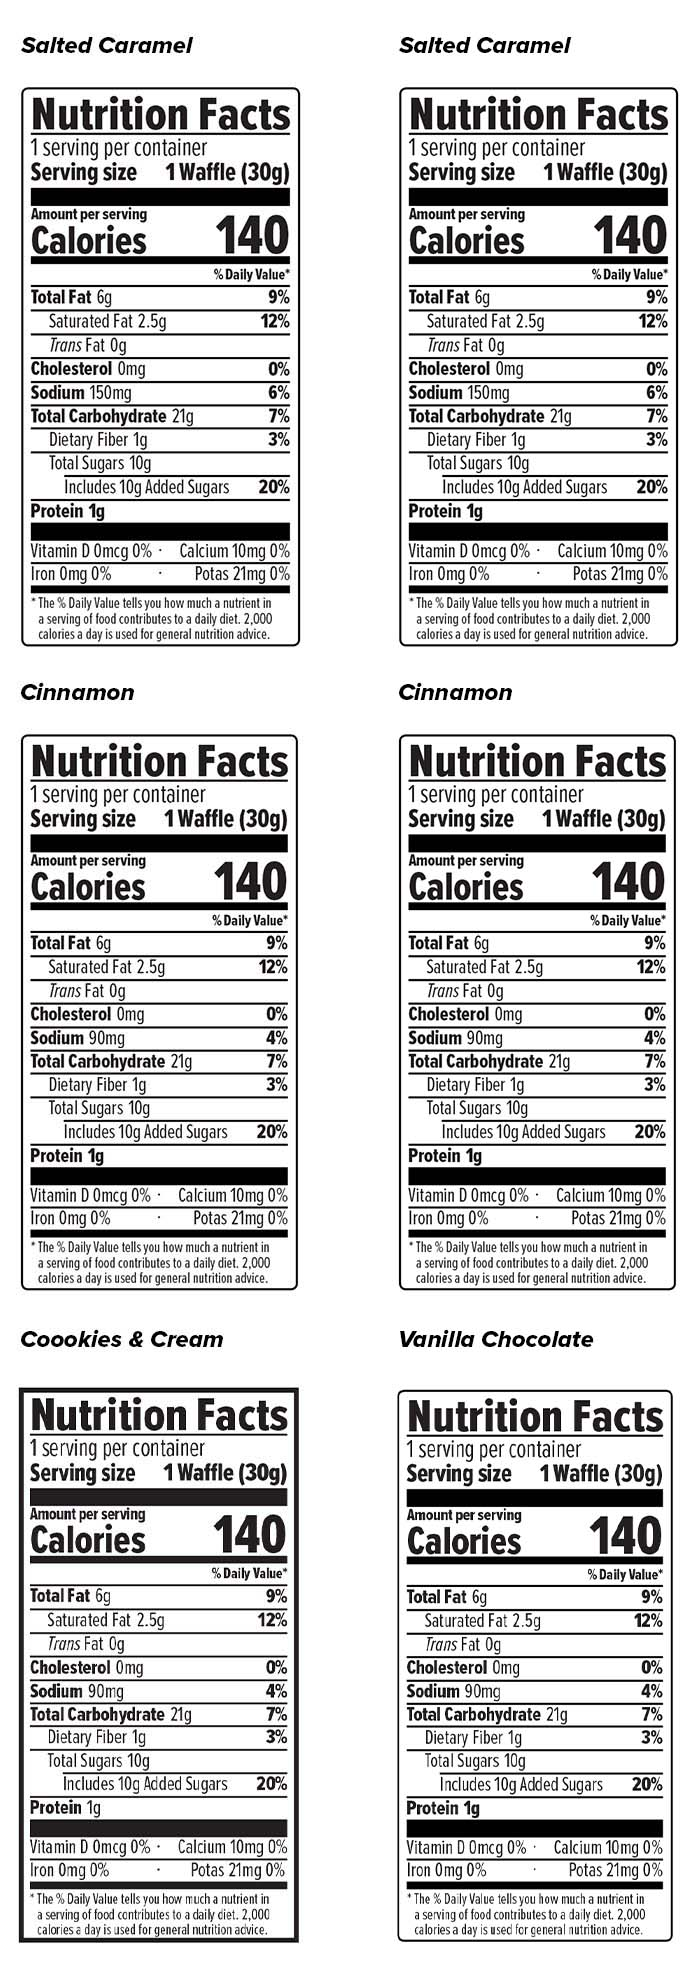 Gluten Free Variety pack Nutrition Facts